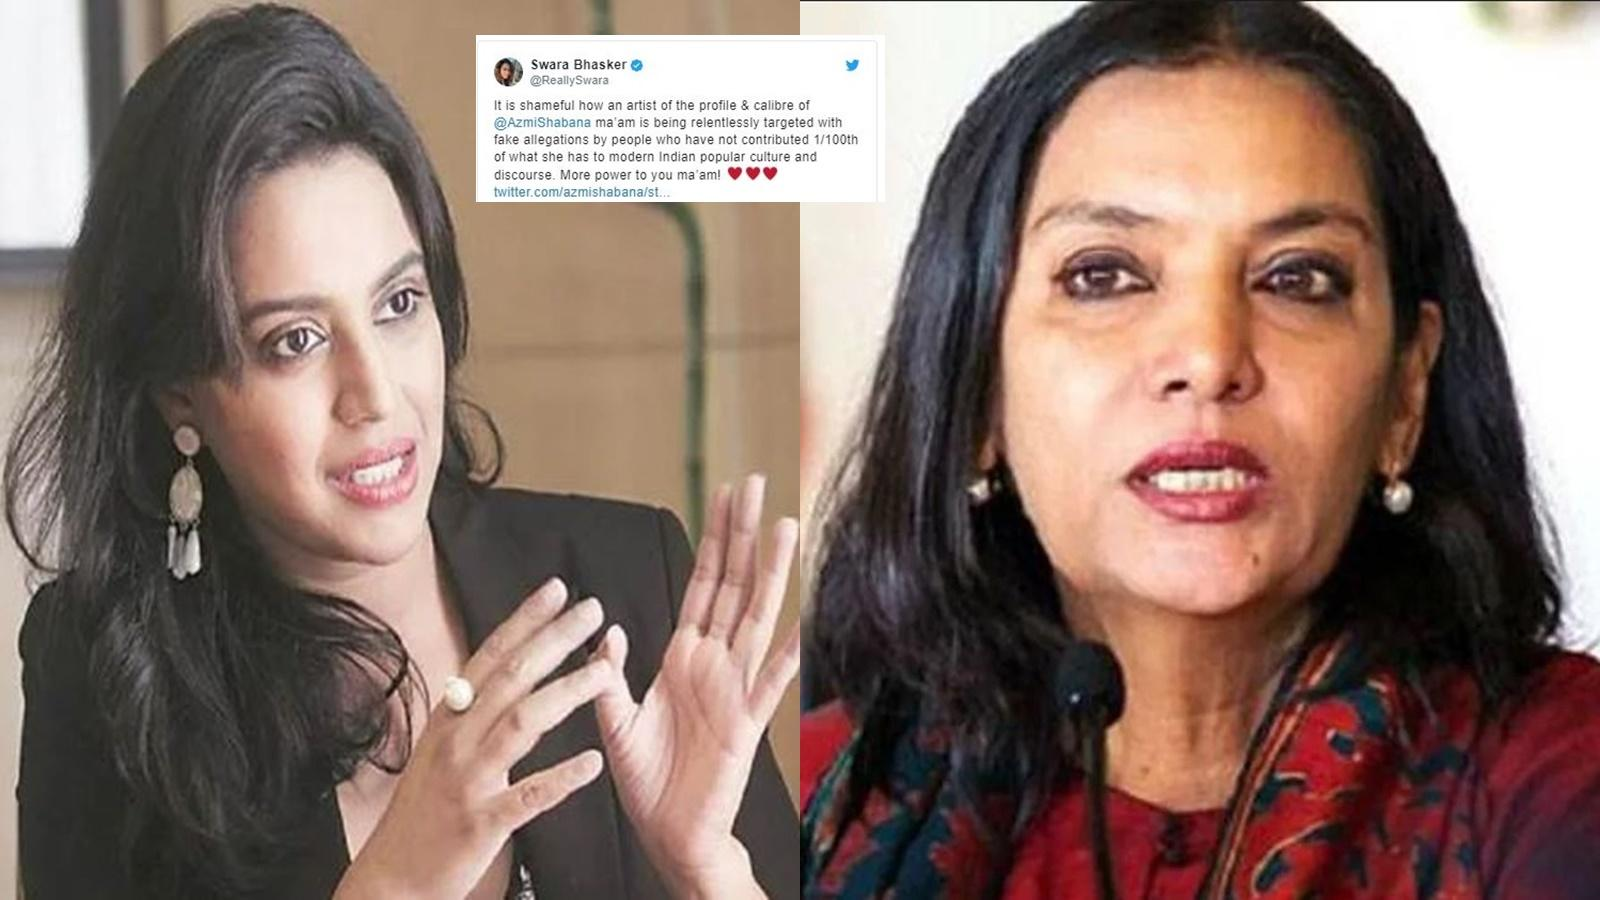 Swara Bhasker supports Shabana Azmi over her remarks on government